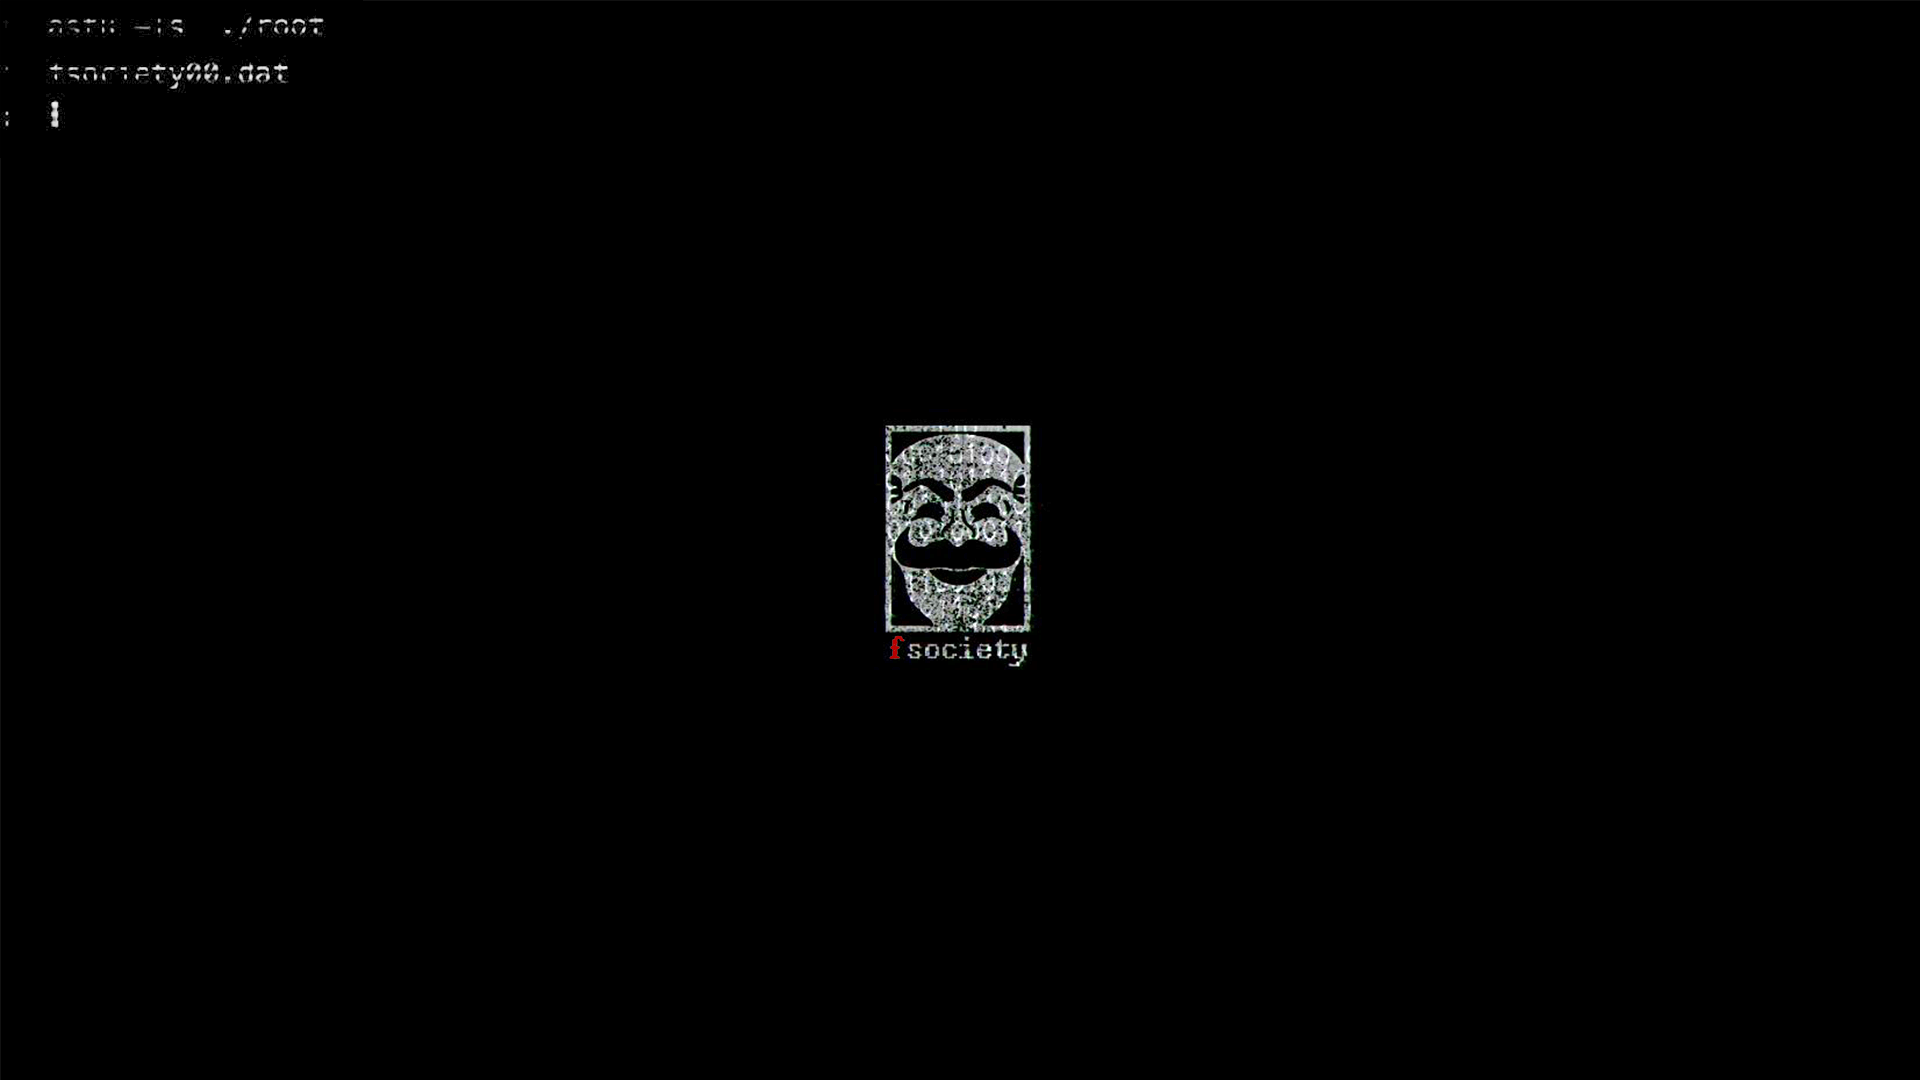 Mr. Robot HD Wallpaper | Background Image | 1920x1080 | ID:701280 - Wallpaper Abyss